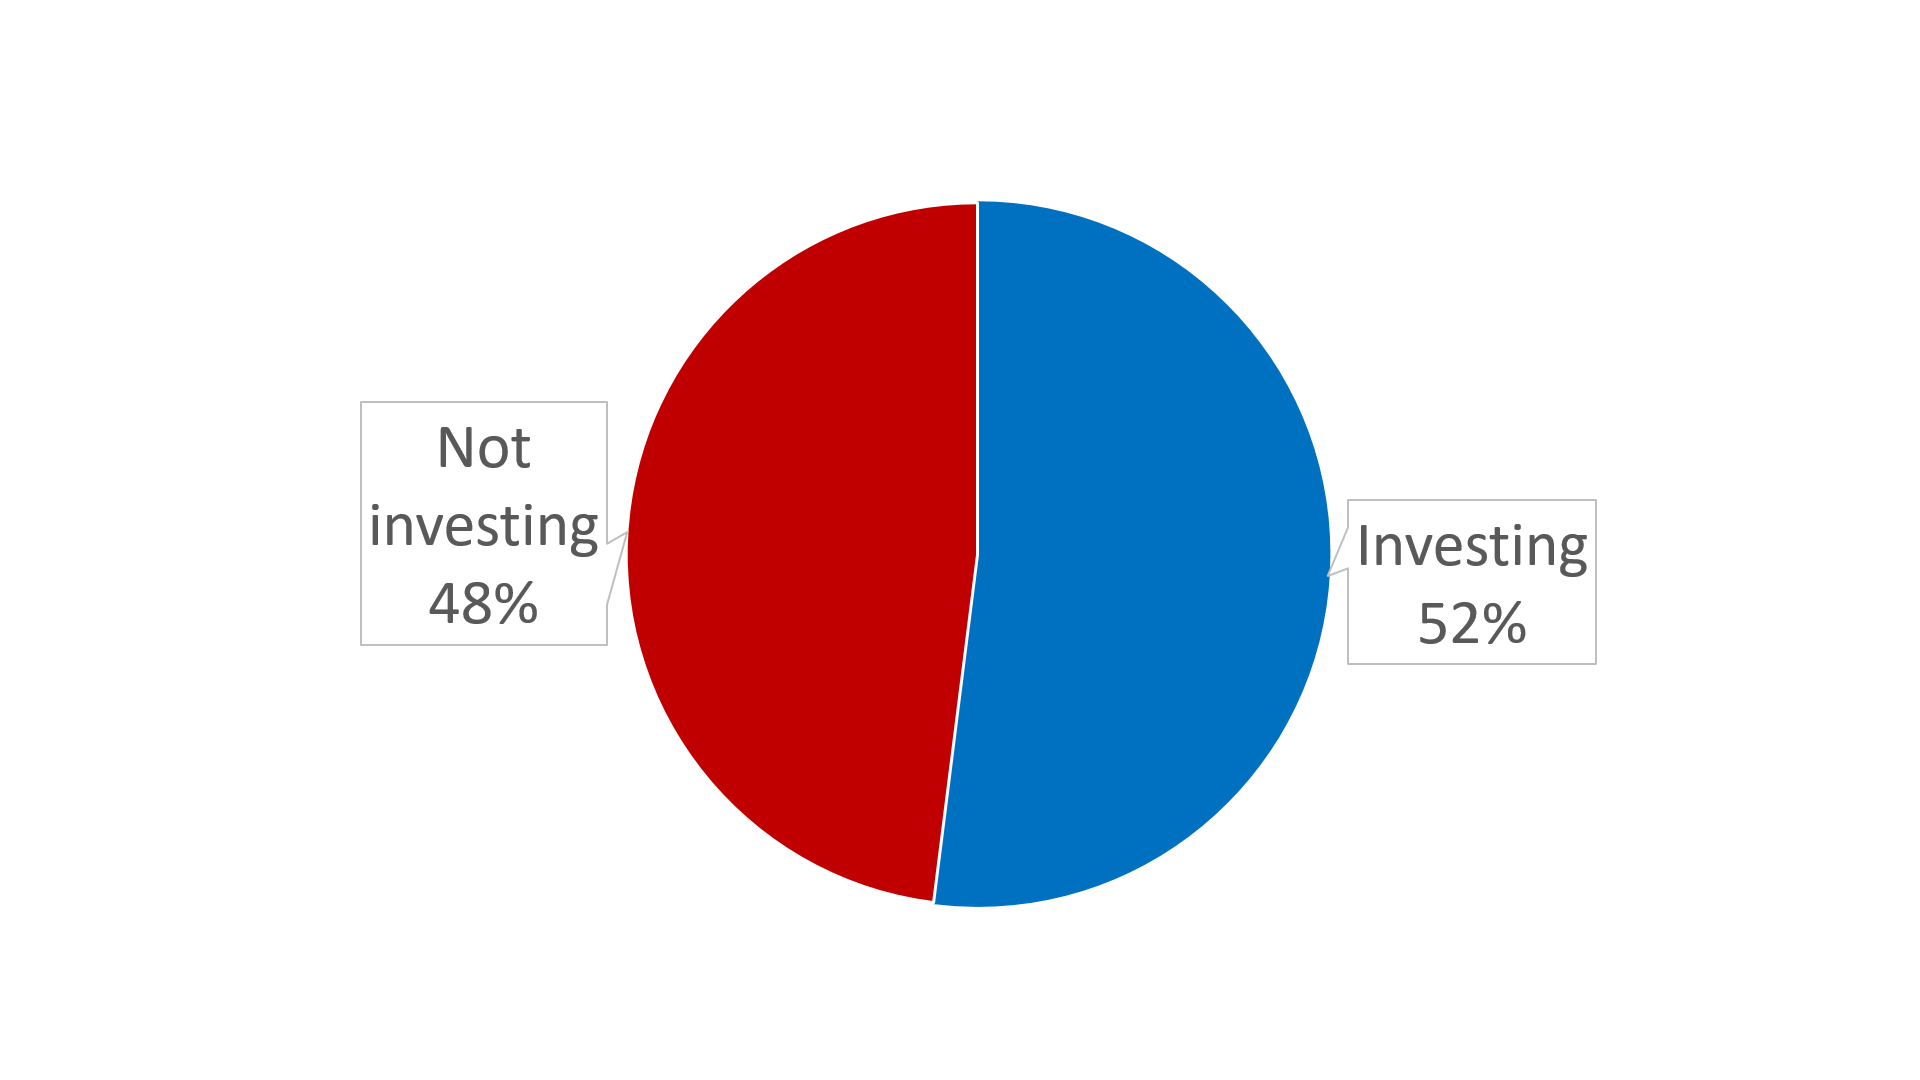 pie chart showing 48% not investing and 52% investing